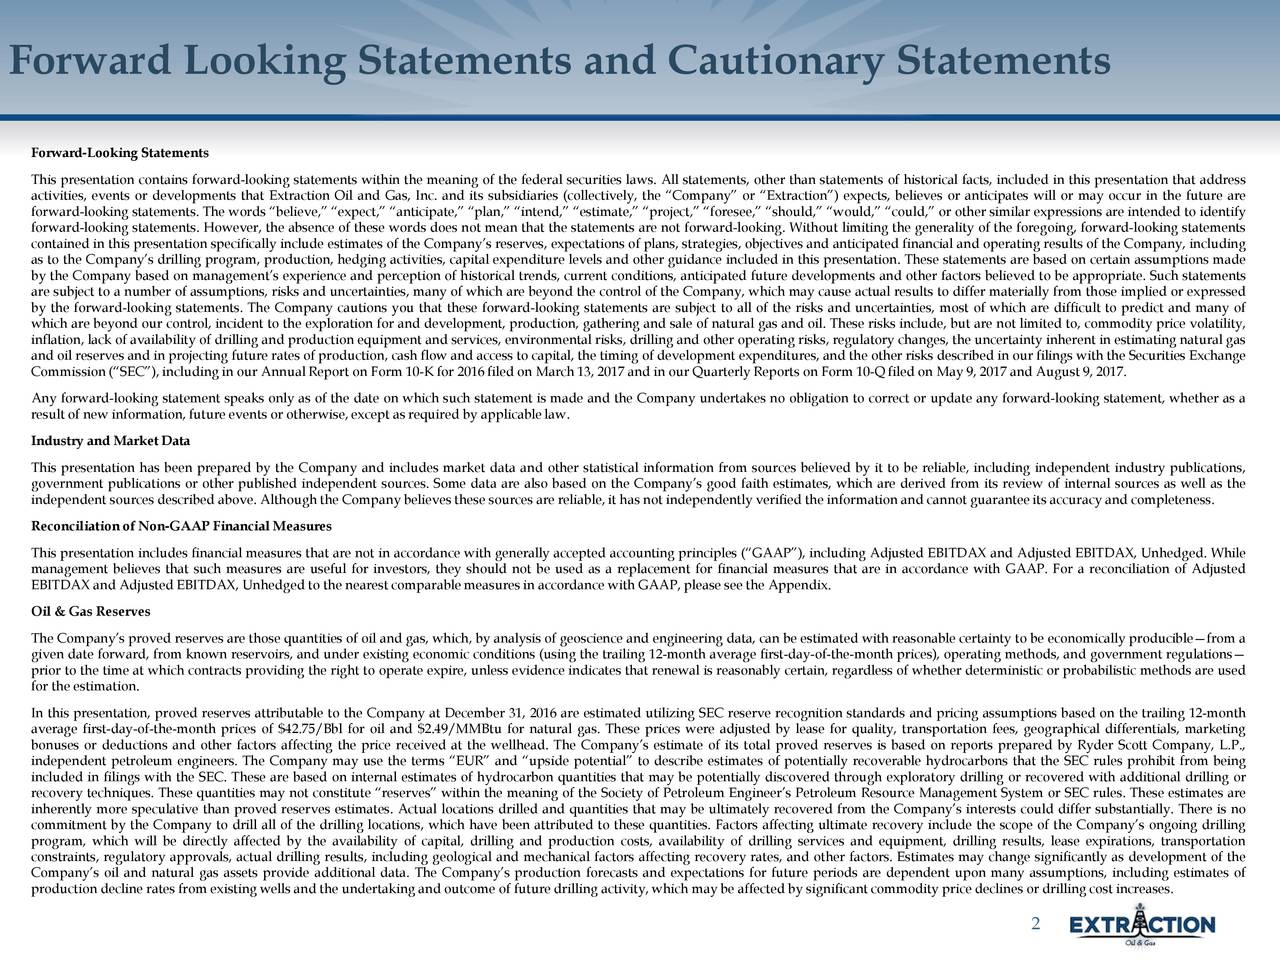 Forward-Looking Statements This presentation contains forward-looking statements within the meaning of the federal securities laws. All statements, other than statements of historicalfacts, included in this presentation that address activities, events or developments that Extraction Oil and Gas, Inc. and its subsidiaries (collectively,the Company or Extraction) expects, believes or anticipates will or may occur in the future are forward-looking statements. The words believe, expect, anticipate, plan, intend, estimate, project, foresee, should, would, could, or other similarexpressionsare intended to identify forward-looking statements. However, the absence of these words does not mean that the statements are not forward-looking. Without limiting the generality of the foregoing, forward-looking statements contained in this presentationspecificallyincludeestimates of the Companys reserves, expectations of plans, strategies, objectives and anticipated financialand operatingresults of the Company, including as to the Companysdrilling program, production, hedging activities, capital expenditure levels and other guidance includedin this presentation. These statements are based on certain assumptions made by the Company based on managements experience and perception of historical trends, current conditions, anticipated future developments and other factors believed to be appropriate. Such statements are subject to a number of assumptions, risks and uncertainties, many of which are beyond the control of the Company, which may cause actual results to differ materiallyfrom those implied or expressed by the forward-looking statements. The Company cautions you that these forward-looking statements are subject to all of the risks and uncertainties, most of which are difficult to predict and many of which are beyond our control, incident to the exploration for and development, production, gatheringand sale of natural gas and oil. These risks include,but are not limited to, commod